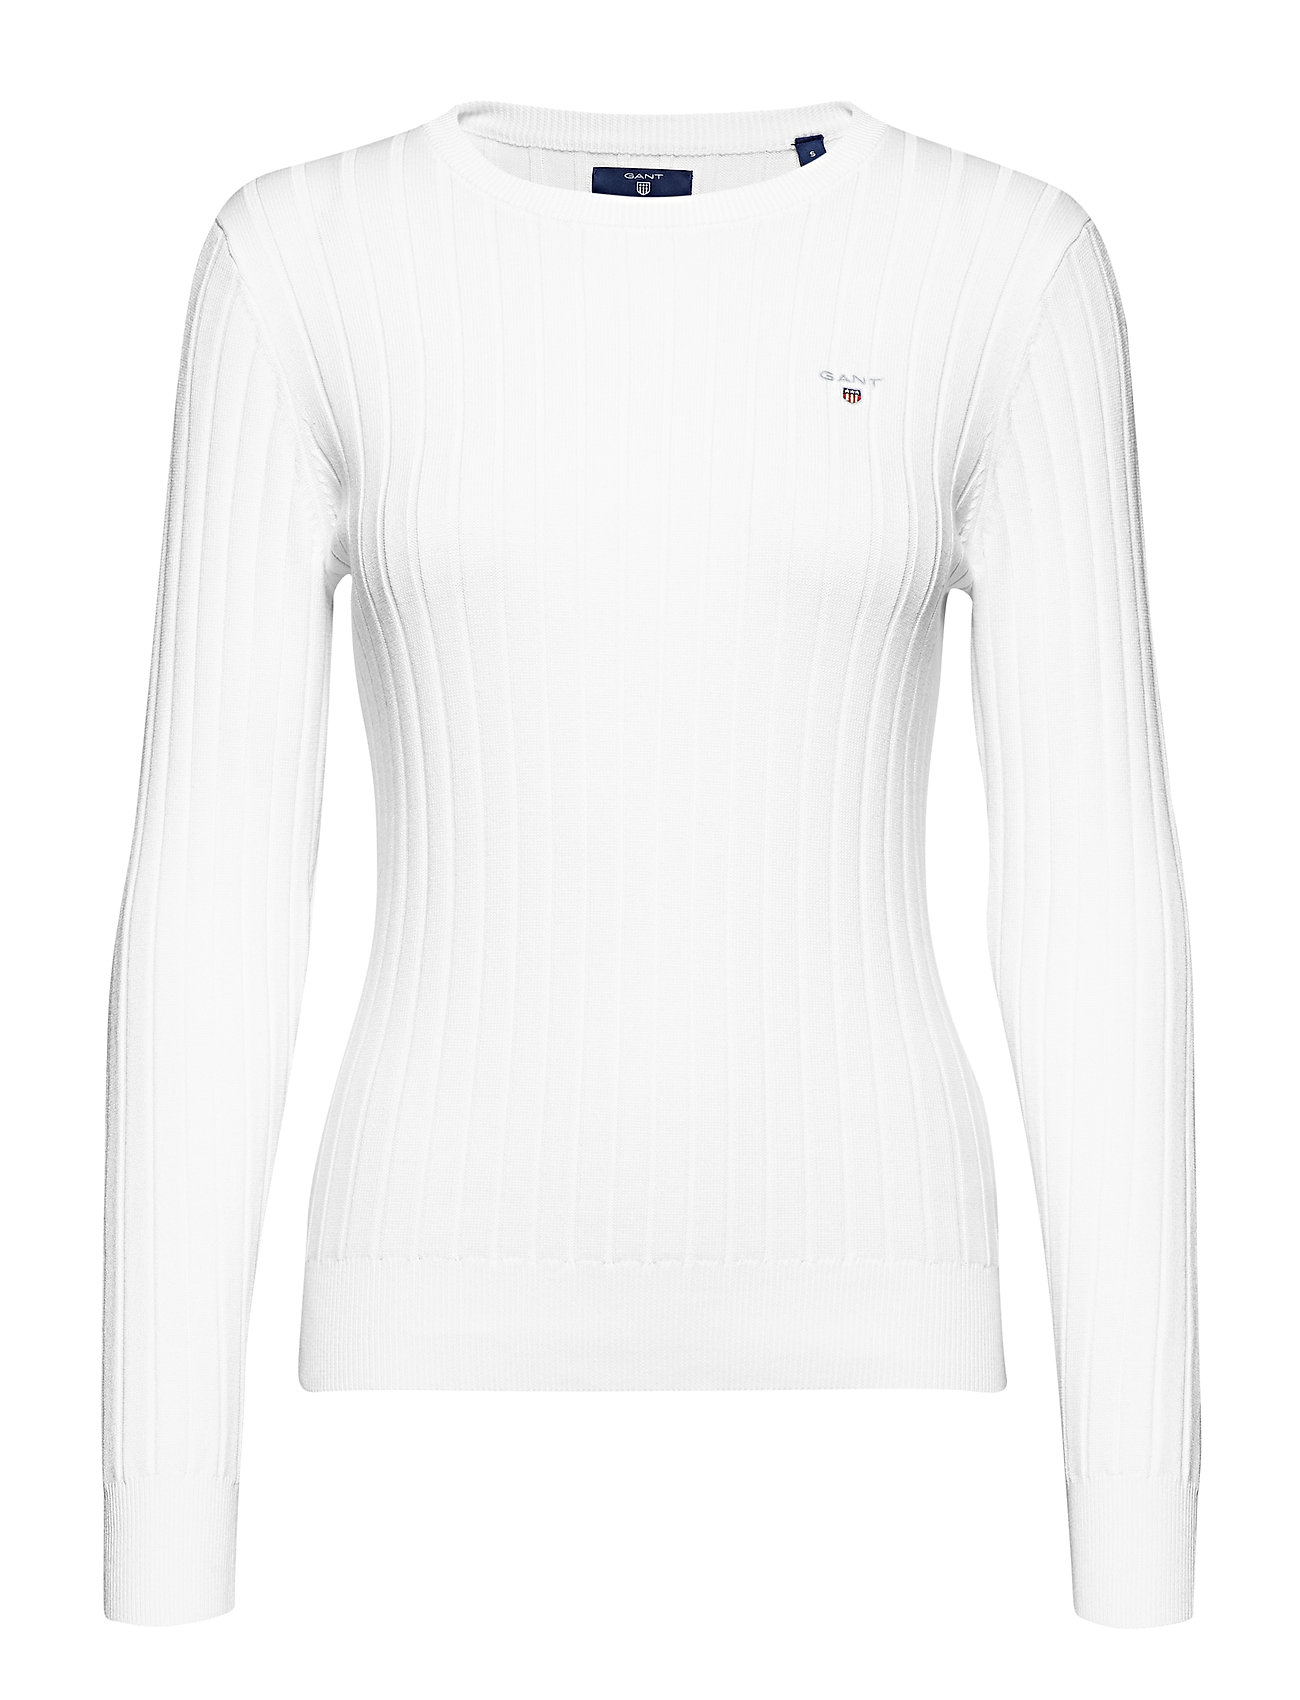 GANT D1. STRETCH COTTON RIB CREW